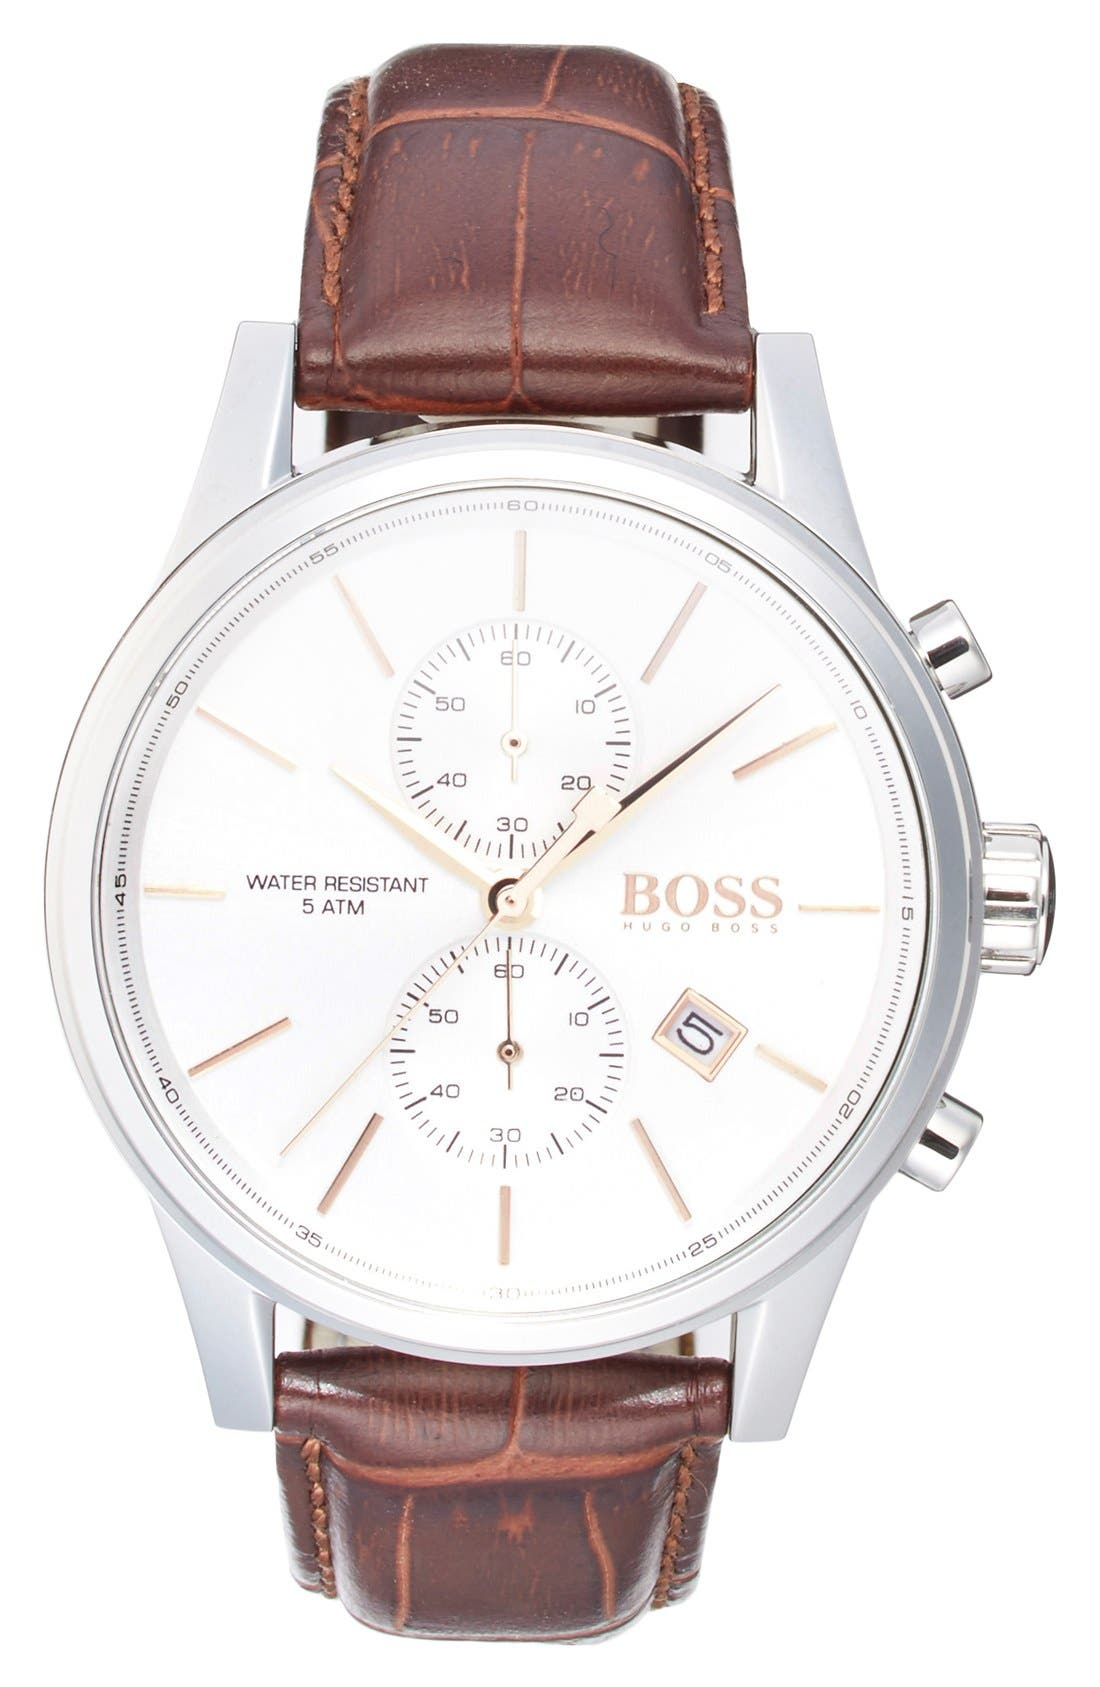 Main Image - BOSS 'Jet Sport' Chronograph Leather Strap Watch, 41mm